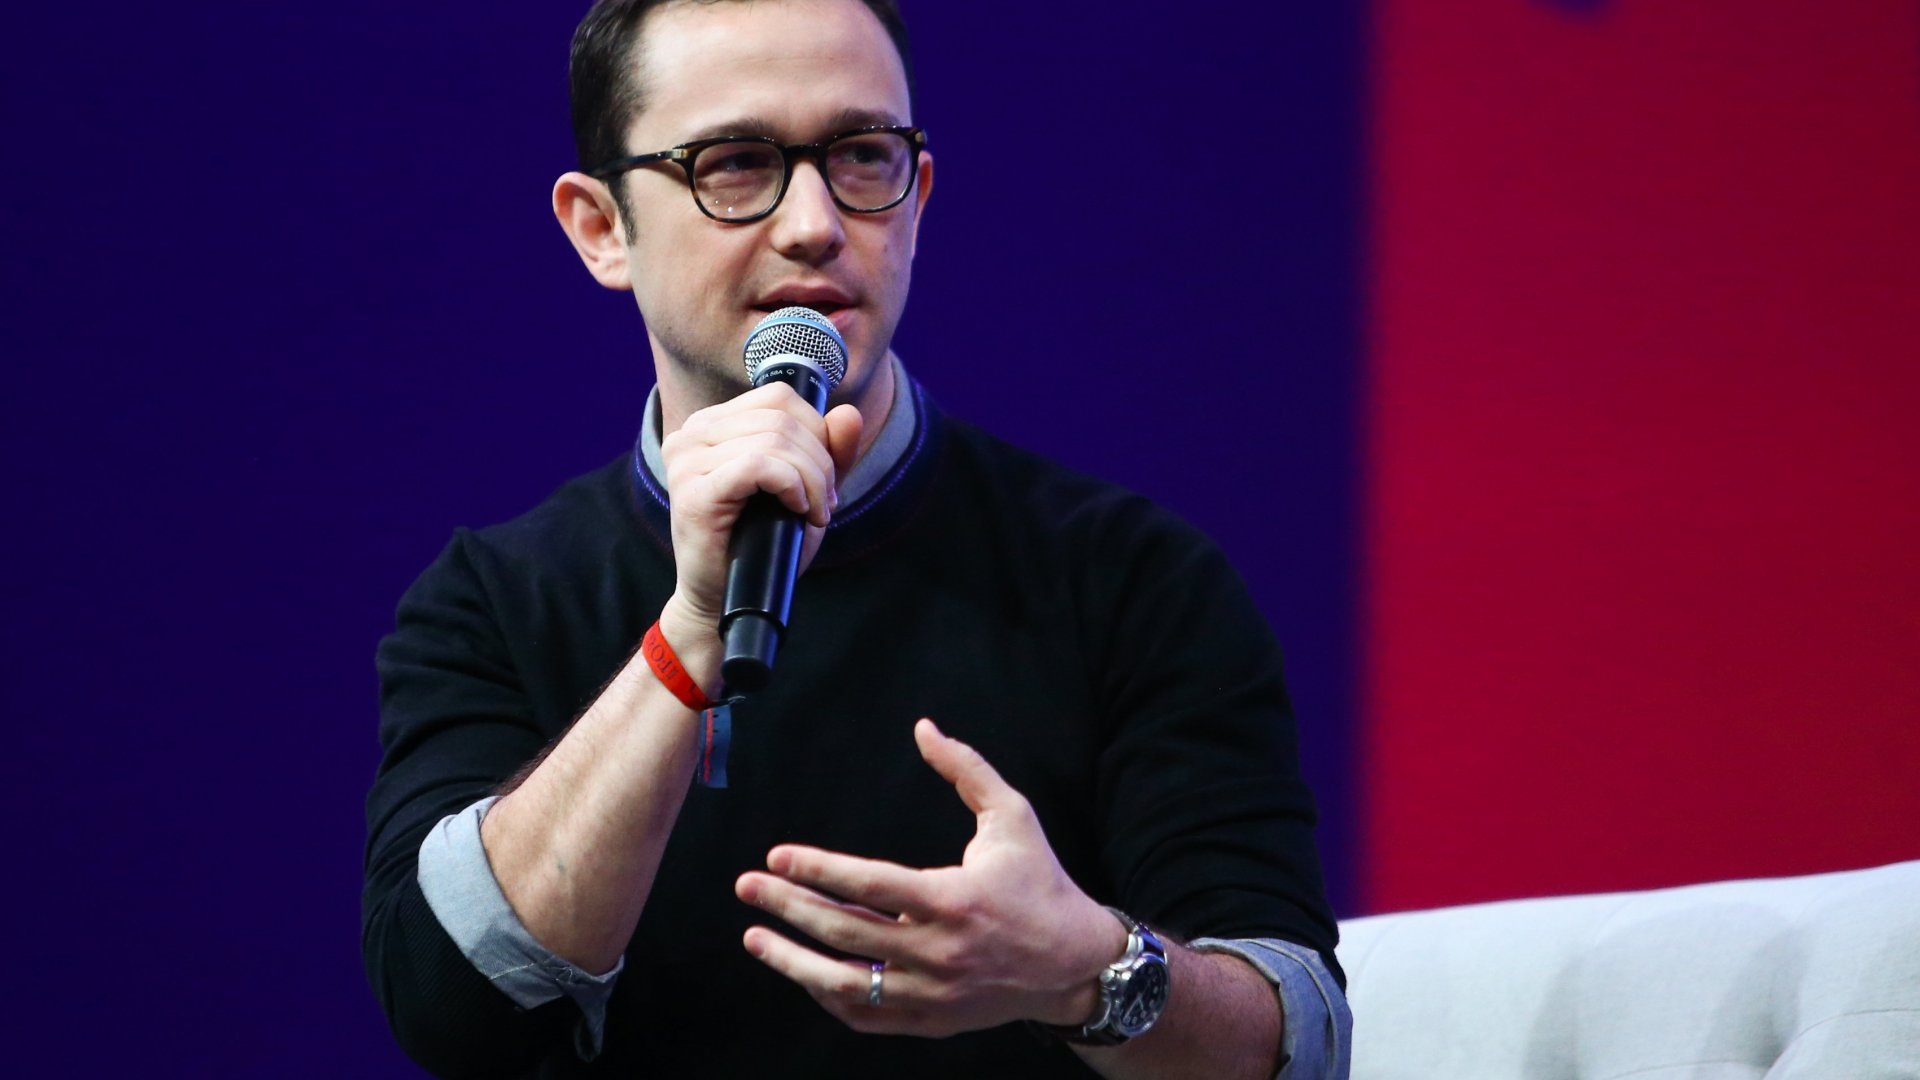 Actor, filmmaker, and entrepreneur Joseph Gordon-Levitt discusses HitRecord at the 2019 Collision Conference